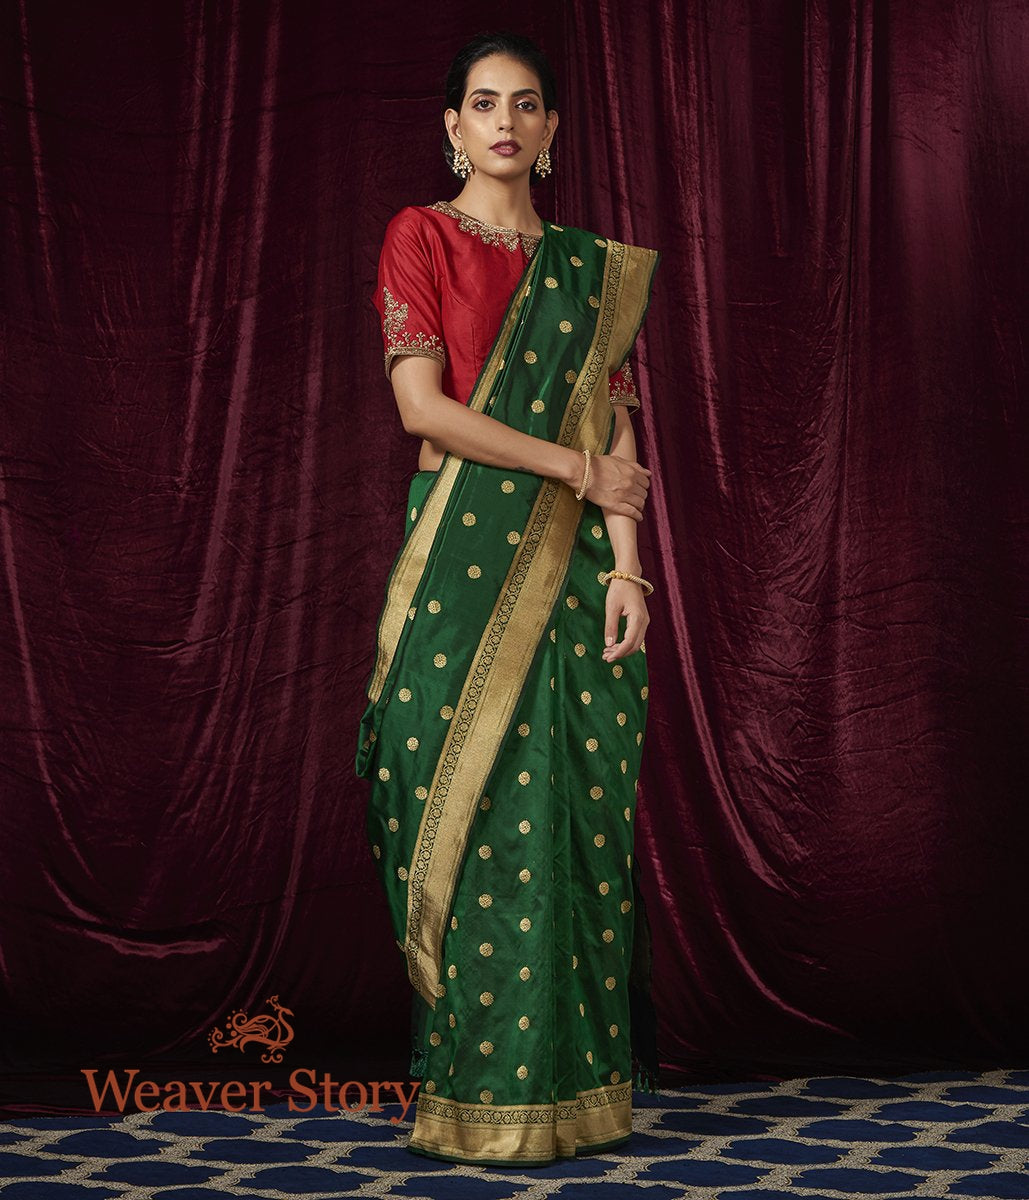 Handwoven Emerald Green Asharfi Booti Saree